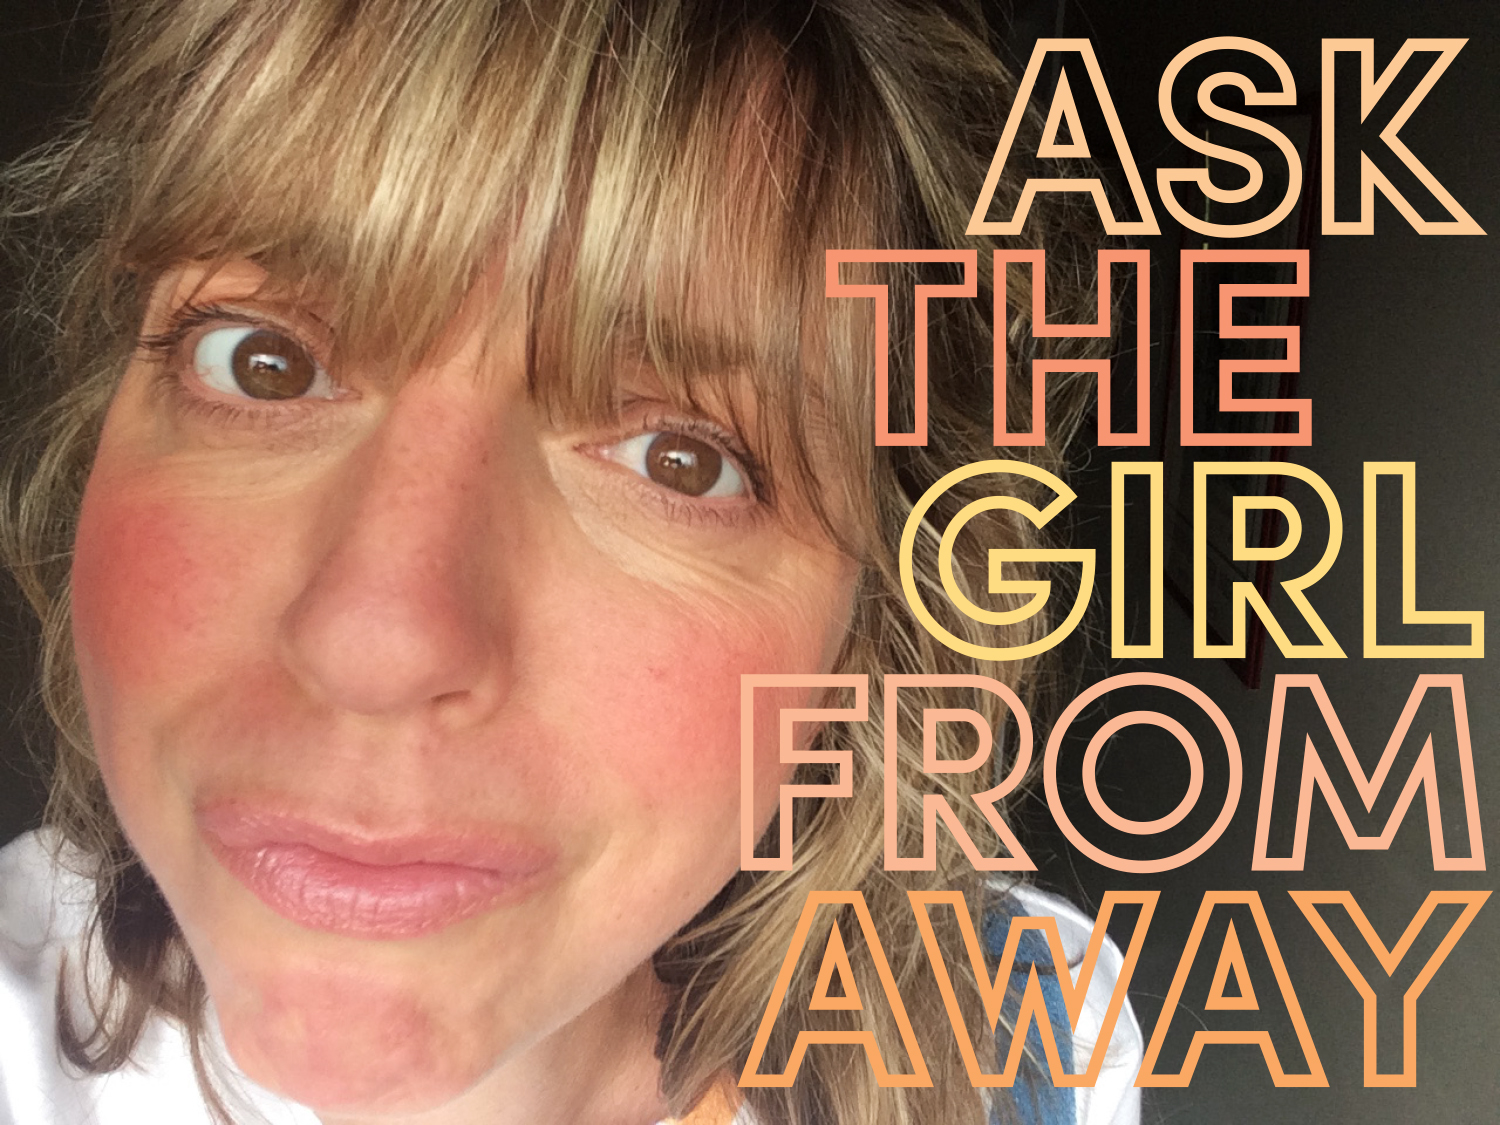 Ask The Girl From Away.JPG